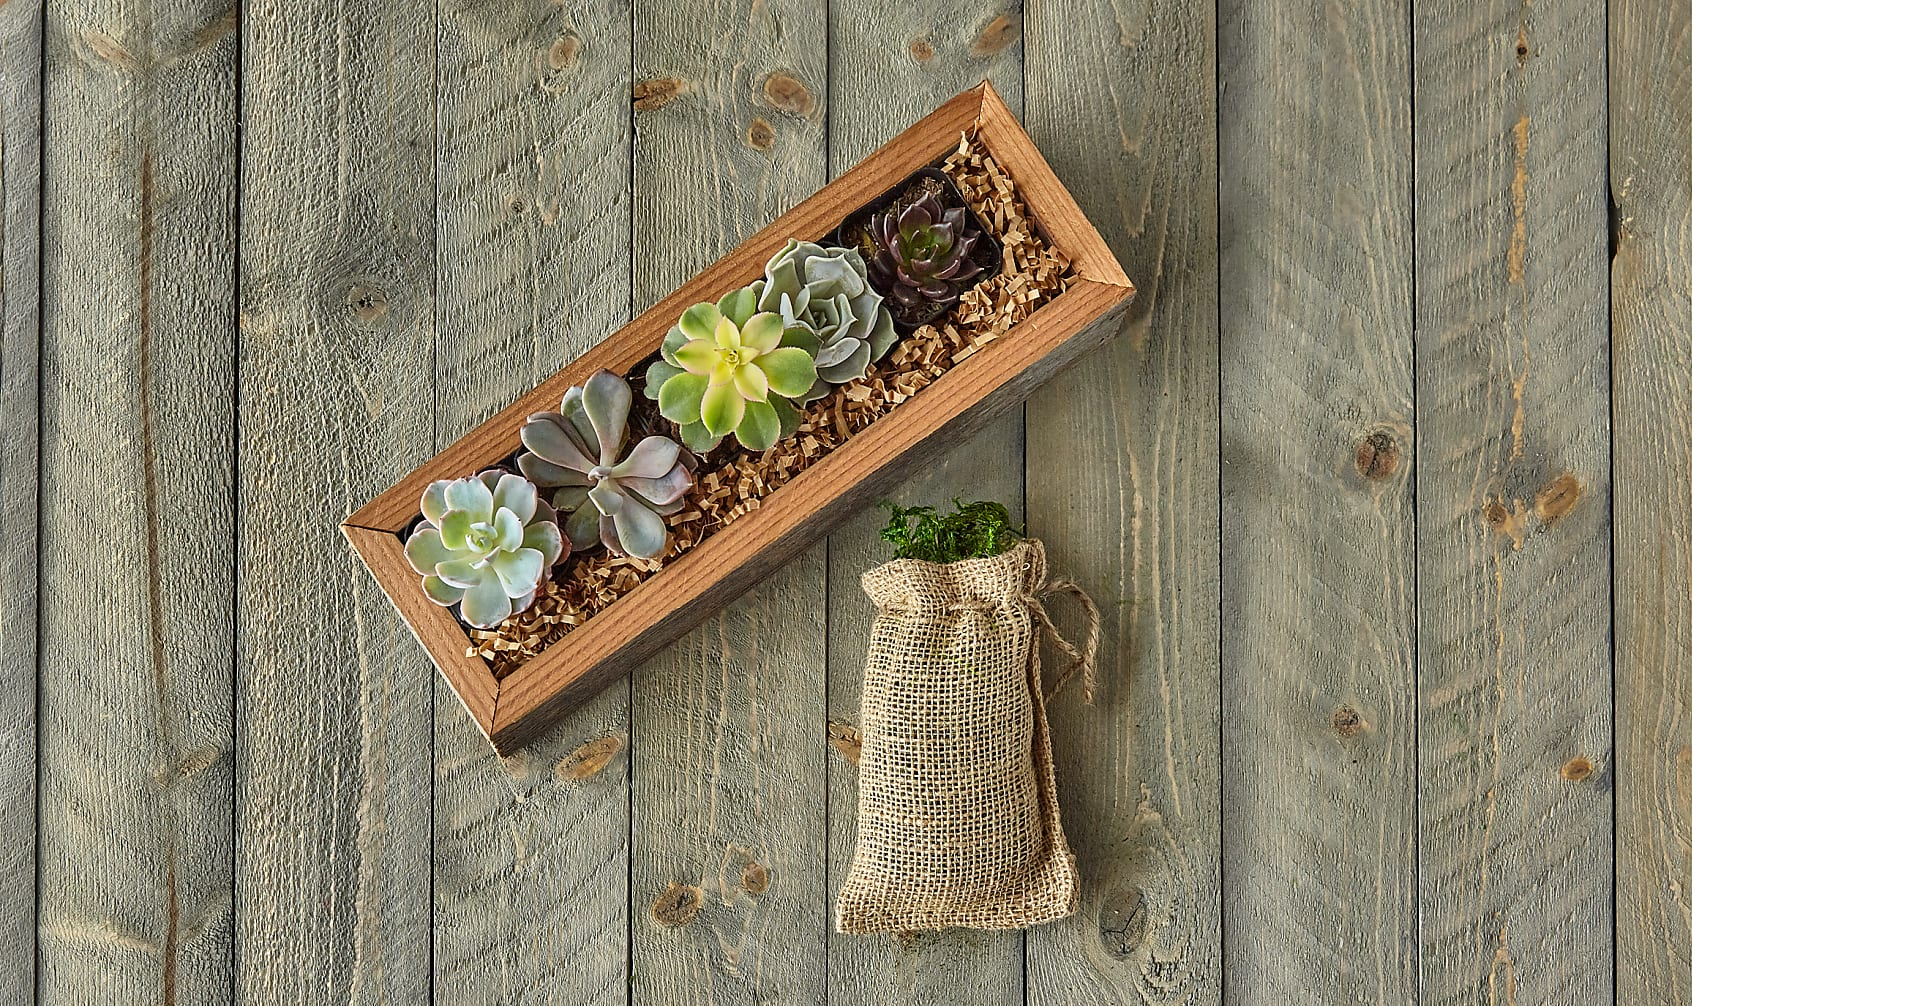 Succulent Garden DIY Kit - Image 4 Of 8